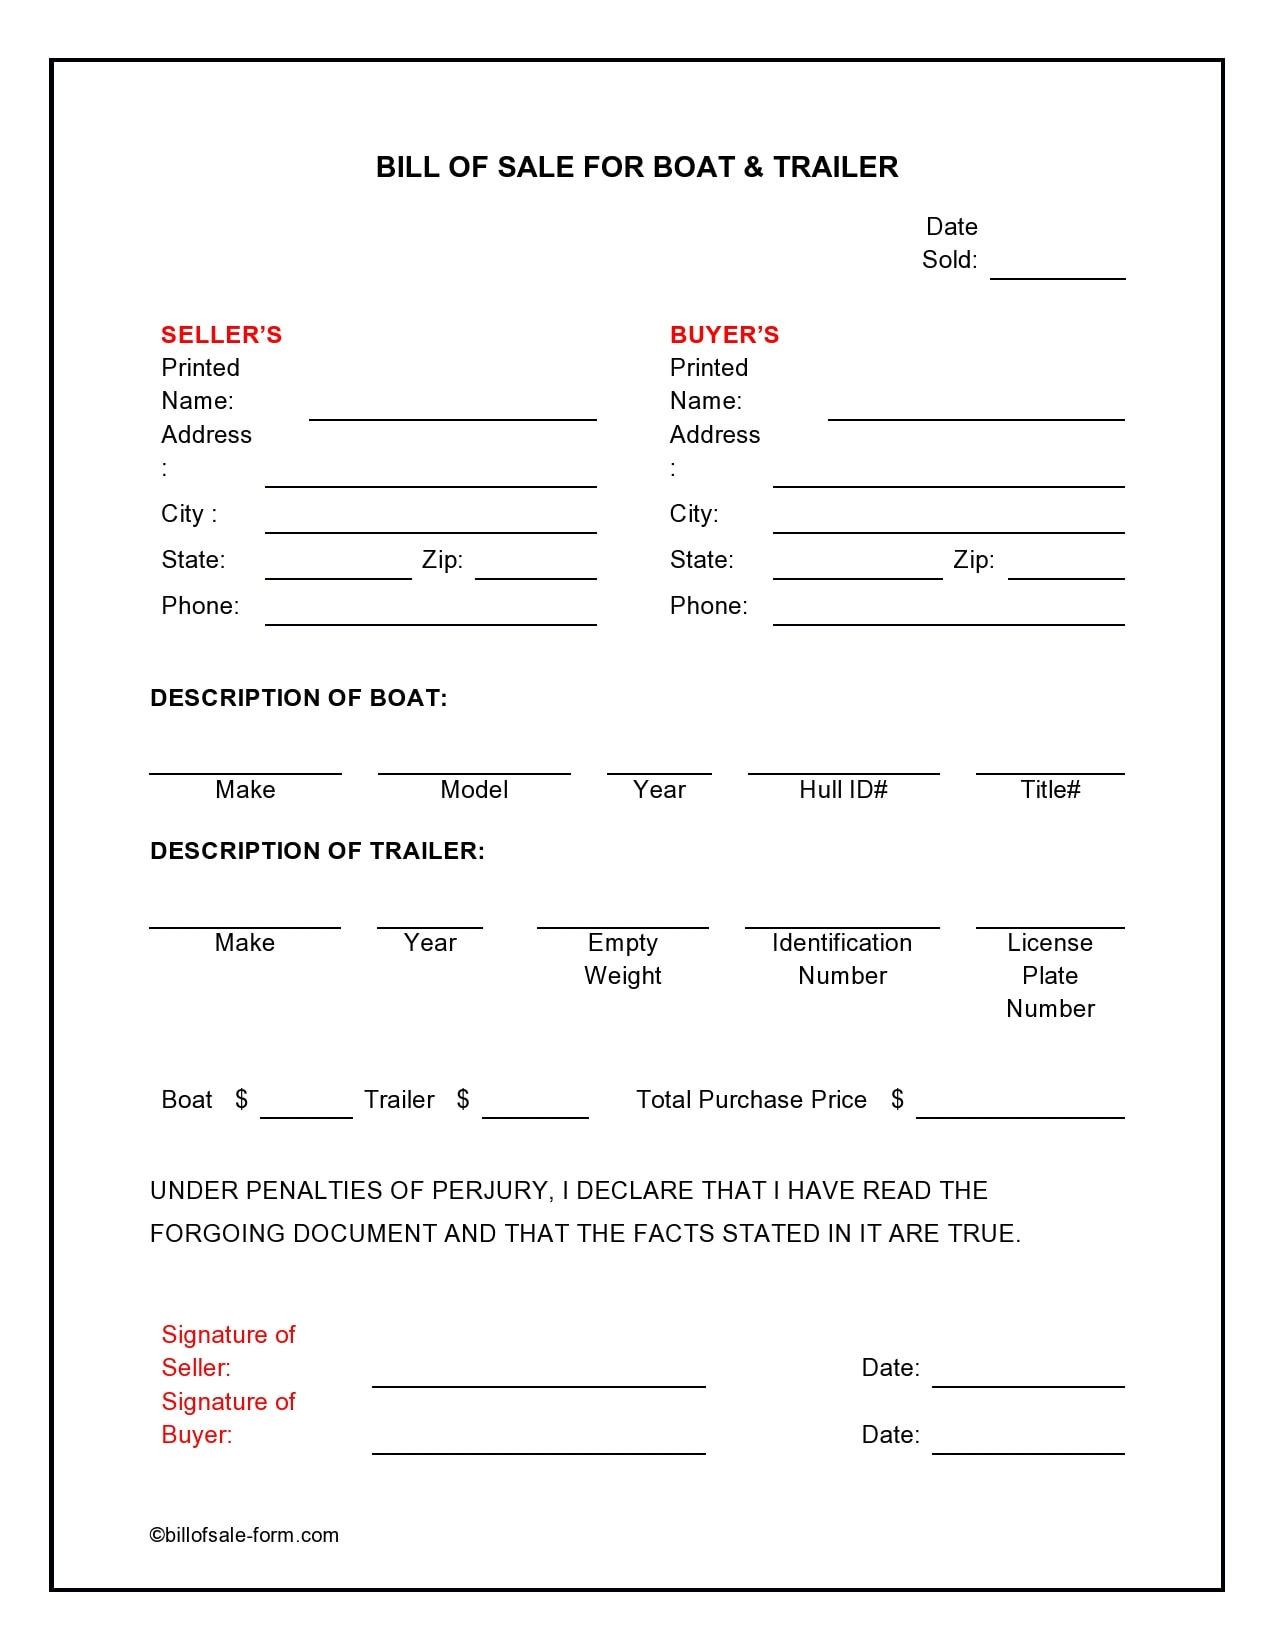 bill of sale for trailer 03